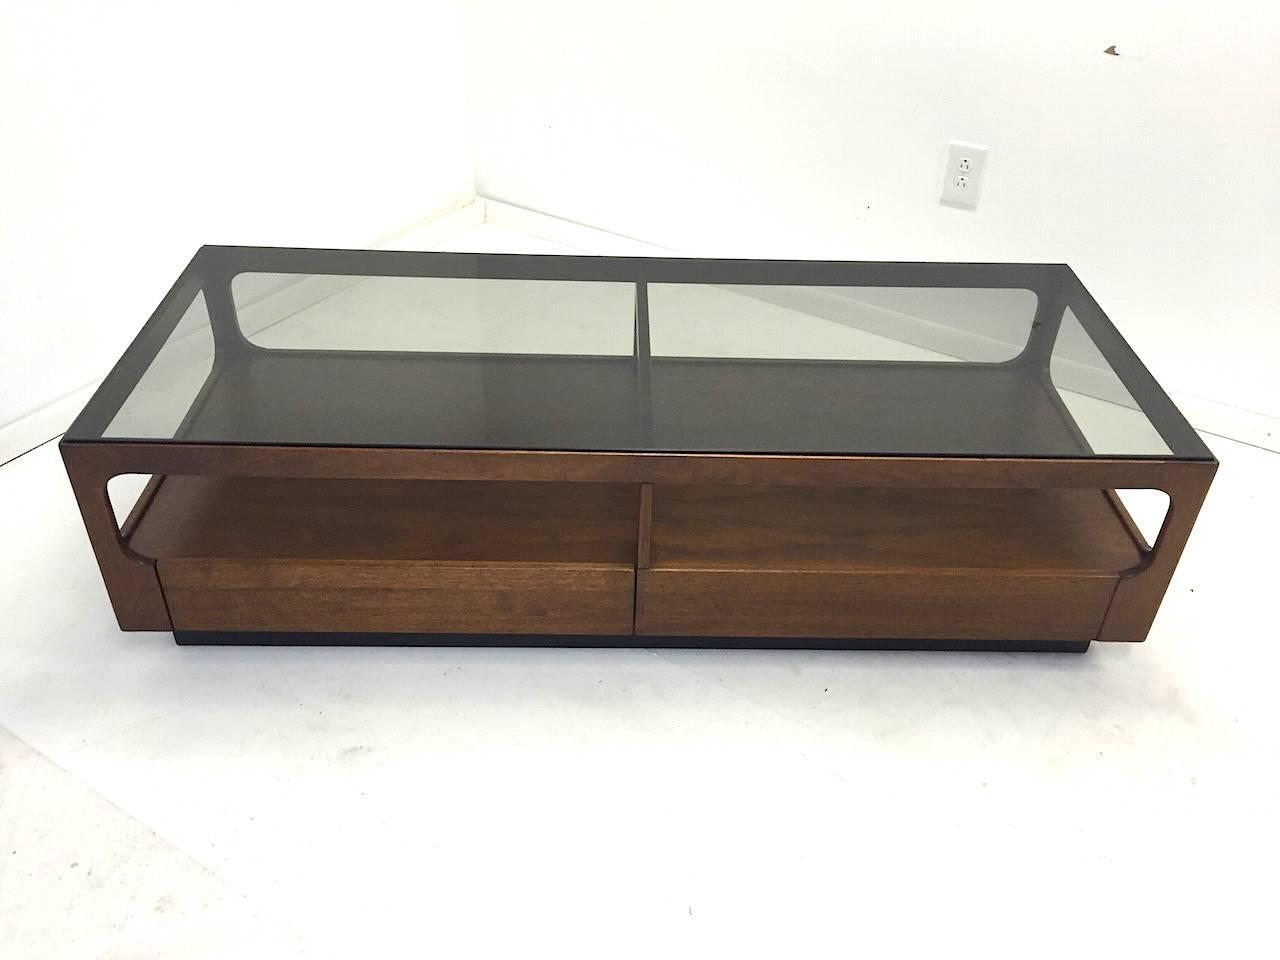 Walnut And Smoked Glass Coffee Table With Storage By John Keal For Brown Saltman At 1stdibs